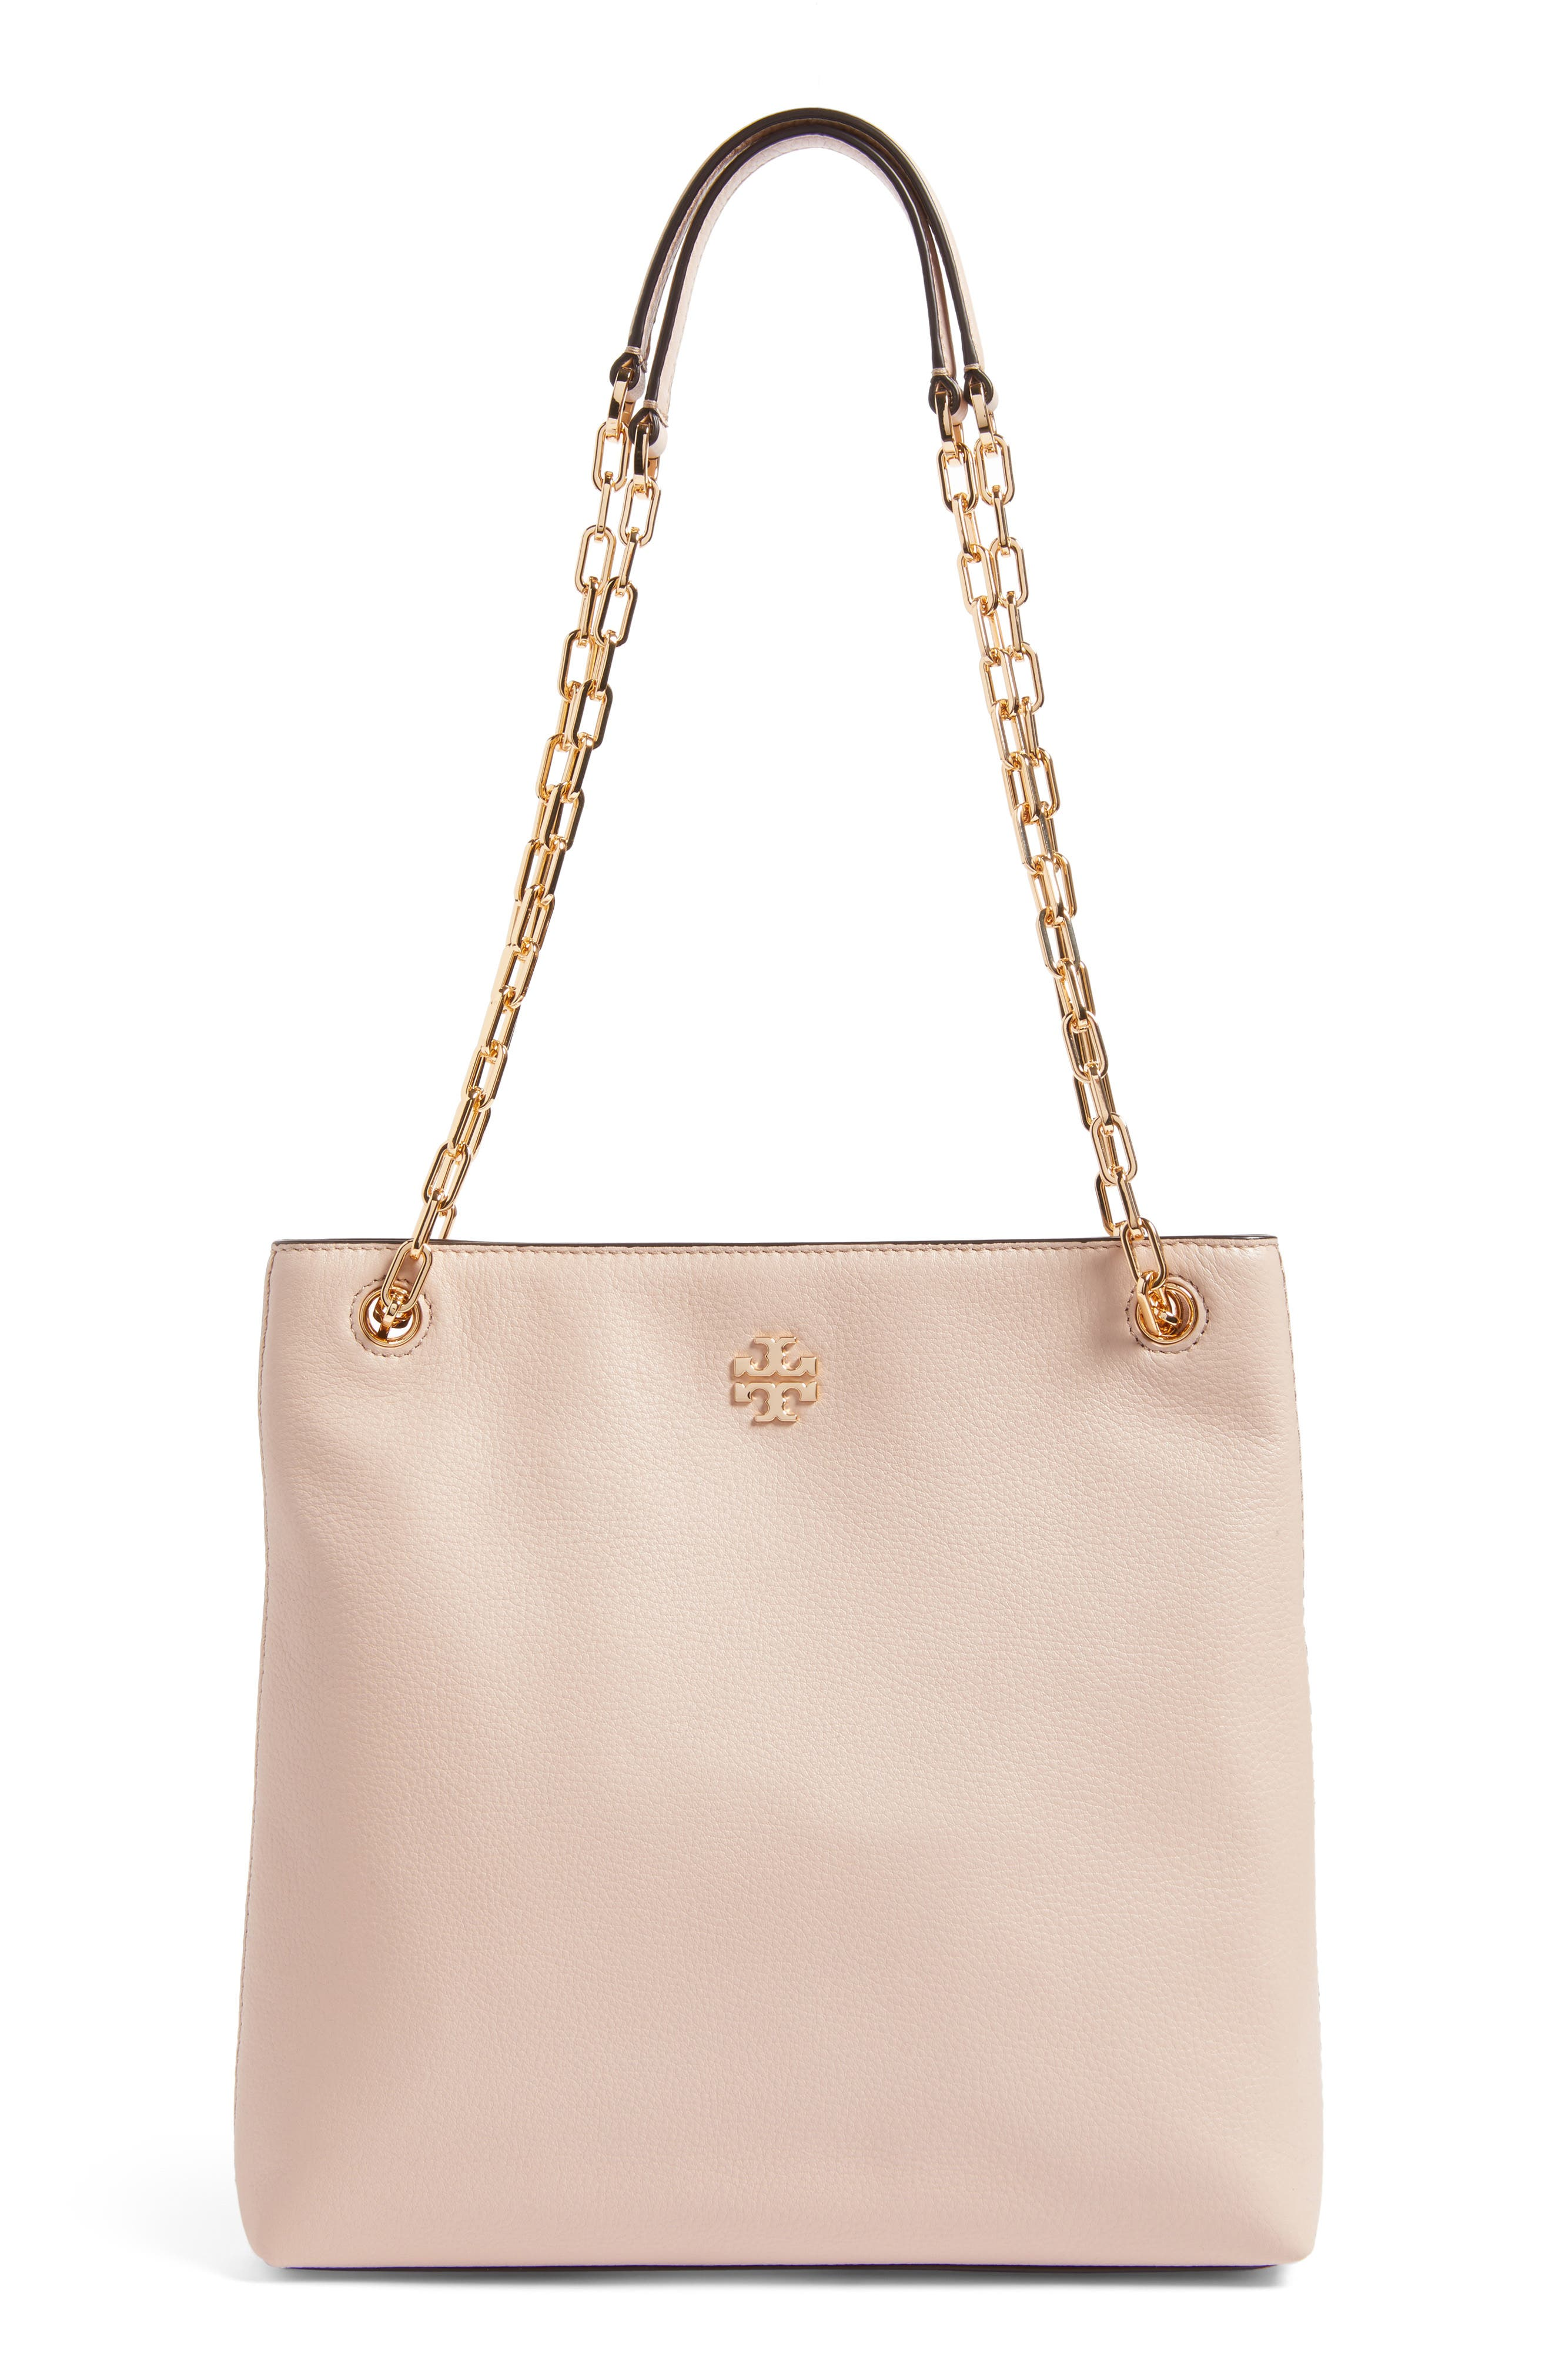 Main Image - Tory Burch Frida Swingpack Leather Crossbody Bag (Nordstrom Exclusive)